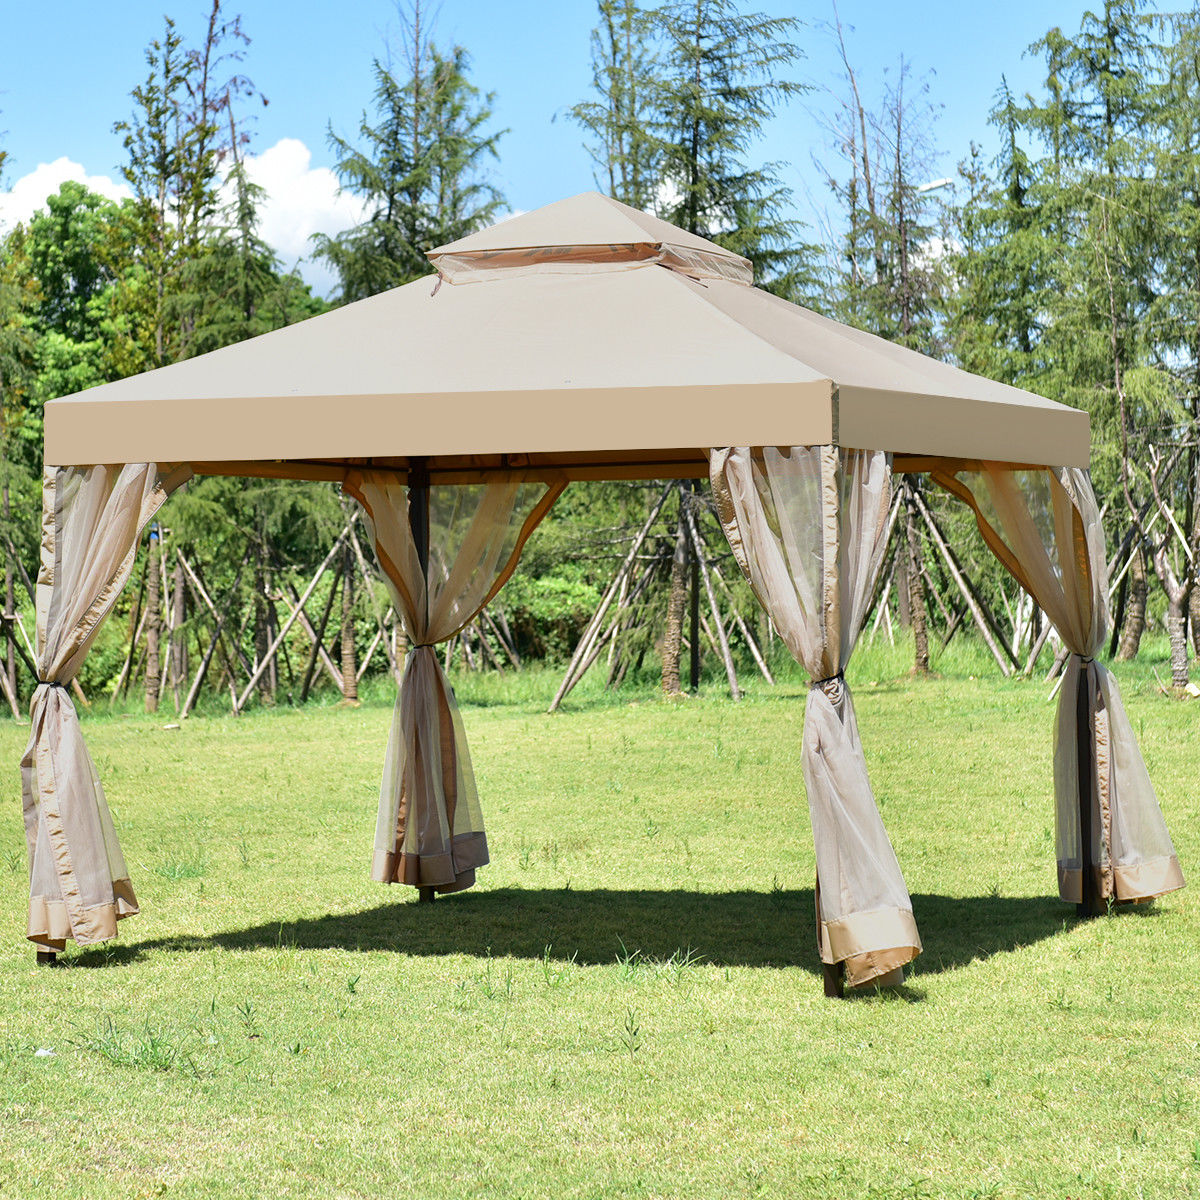 Costway Outdoor 2-Tier 10'x10' Gazebo Canopy Shelter Awning Tent Patio Garden Brown by Costway